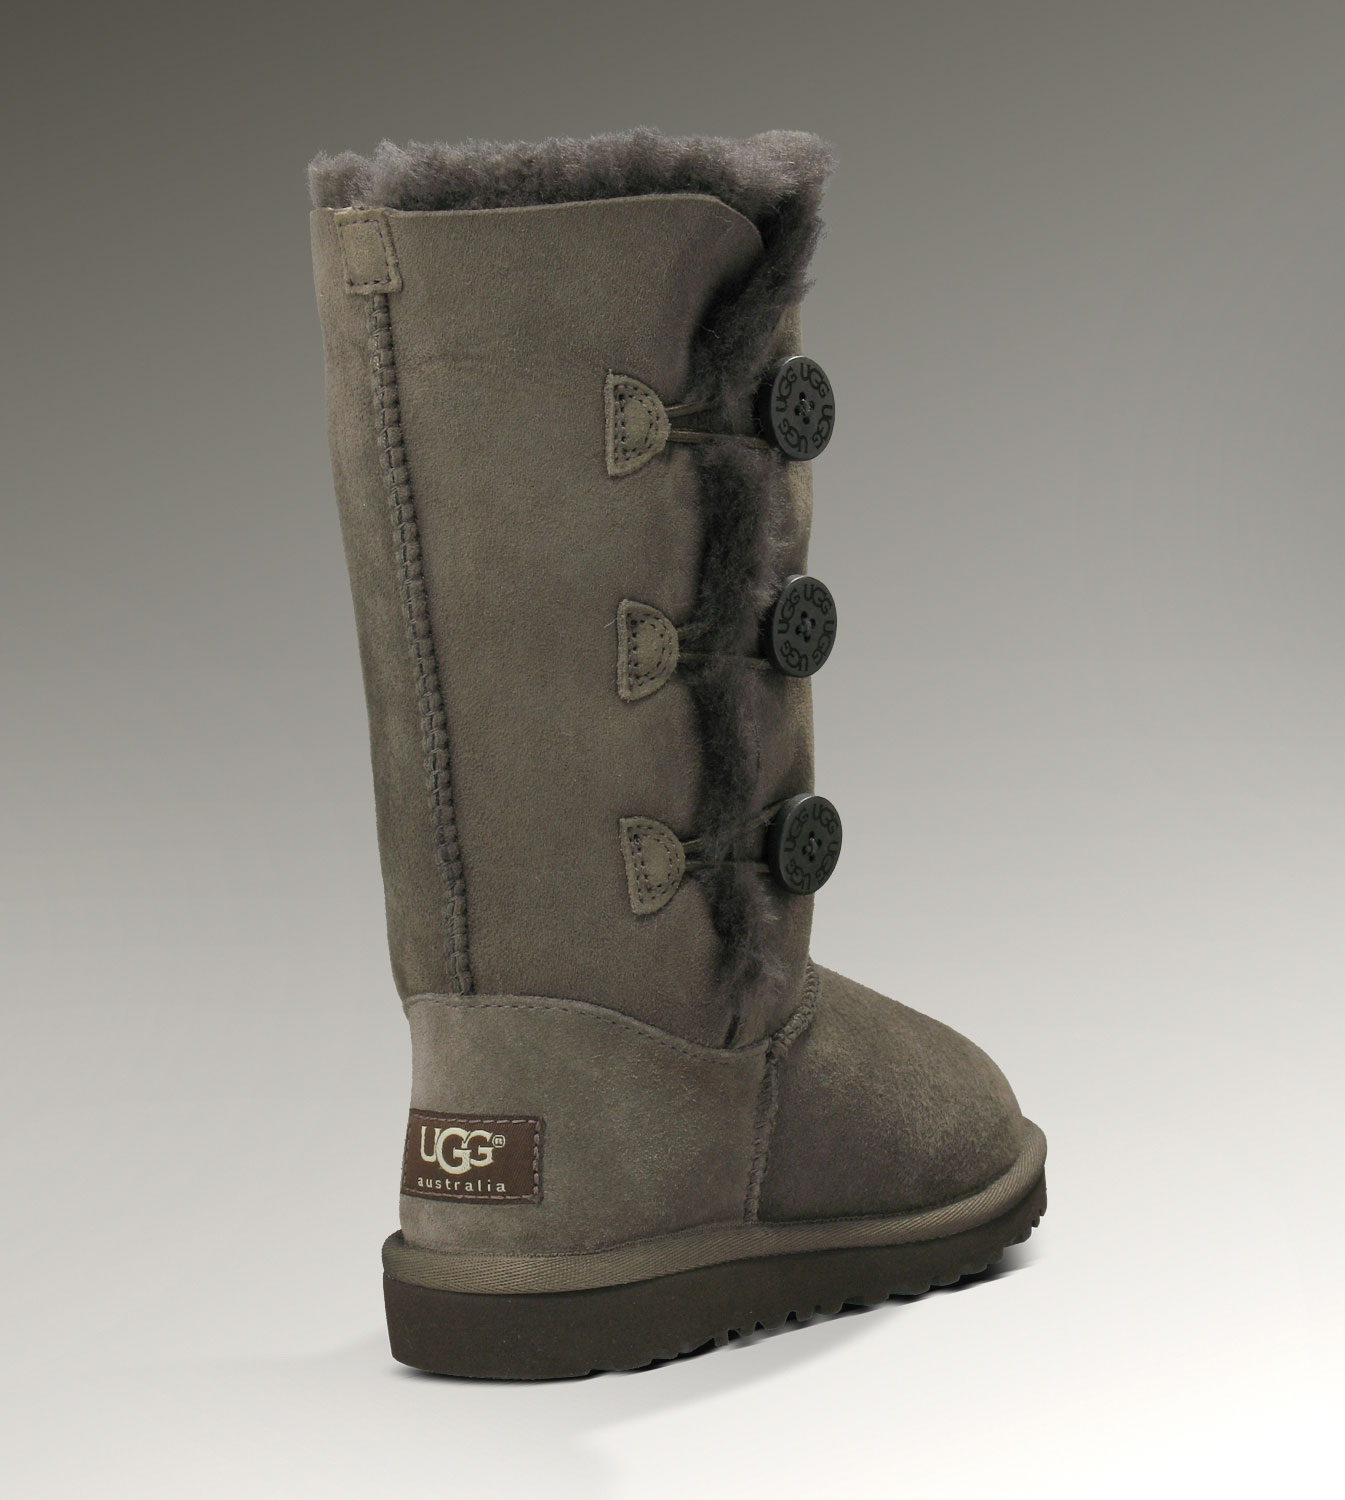 UGG Bailey Button Triplet 1962 Chocolate Boots